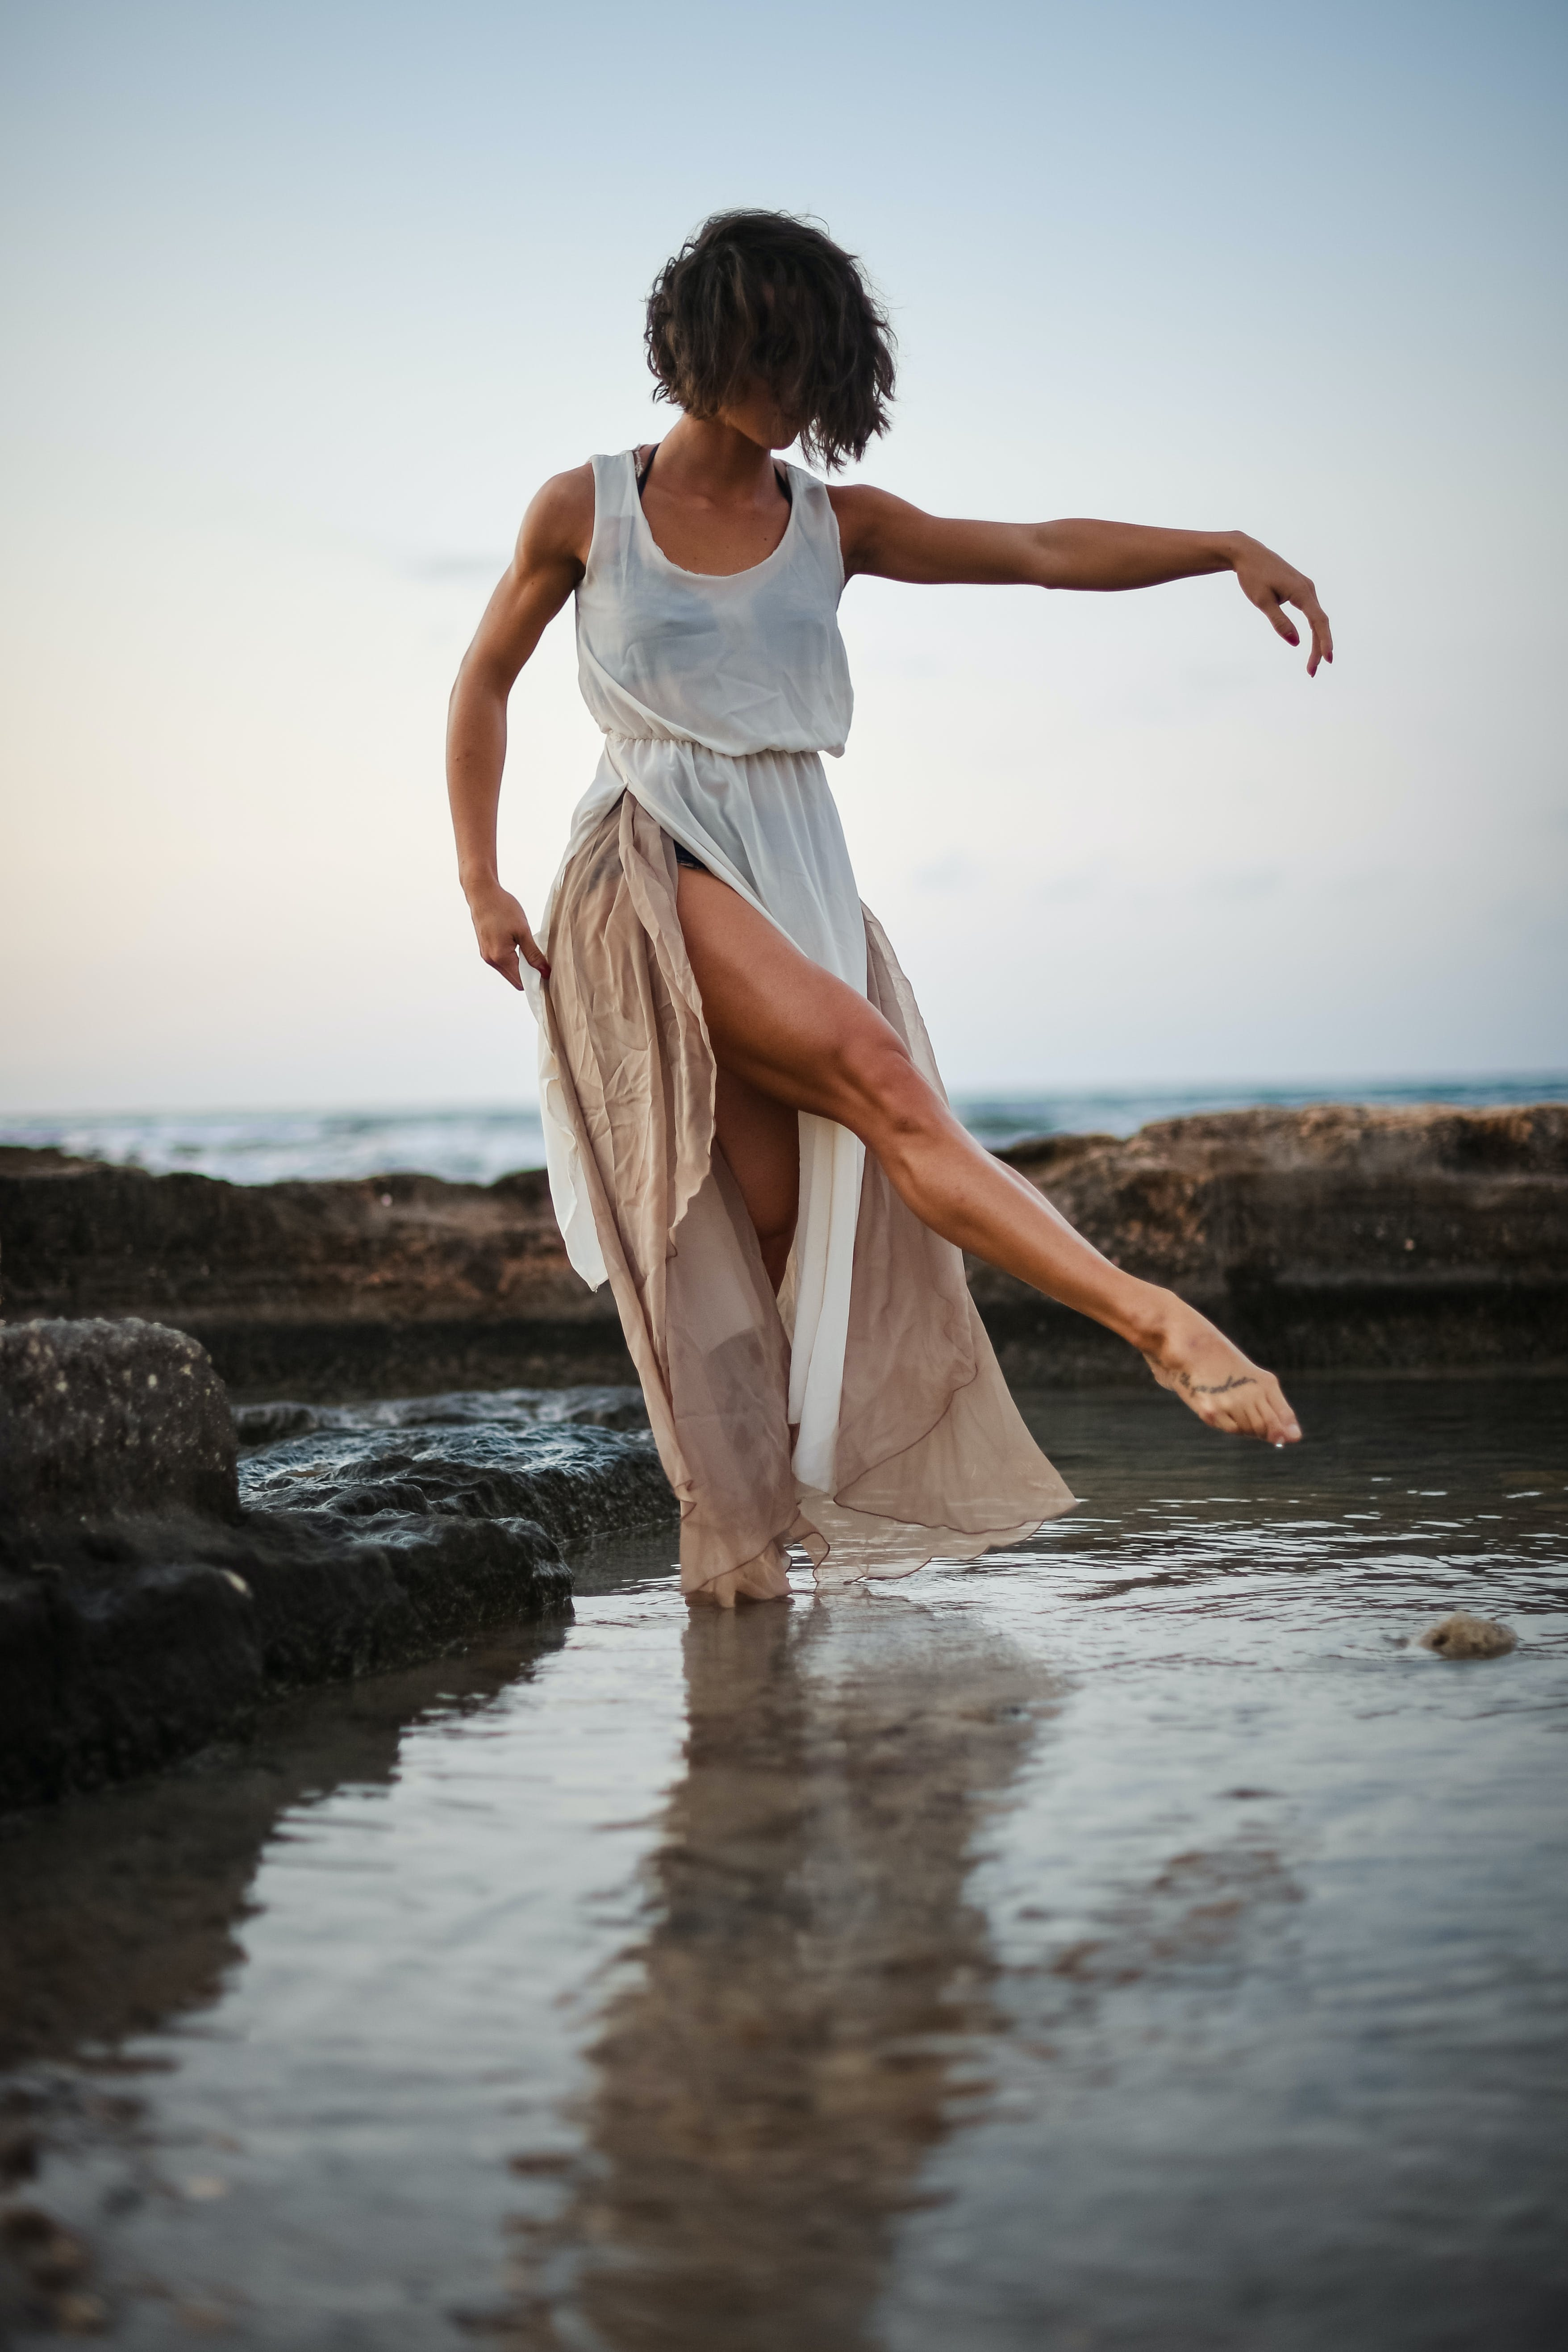 Woman Wearing White Tank Dress Posing in Body of Water